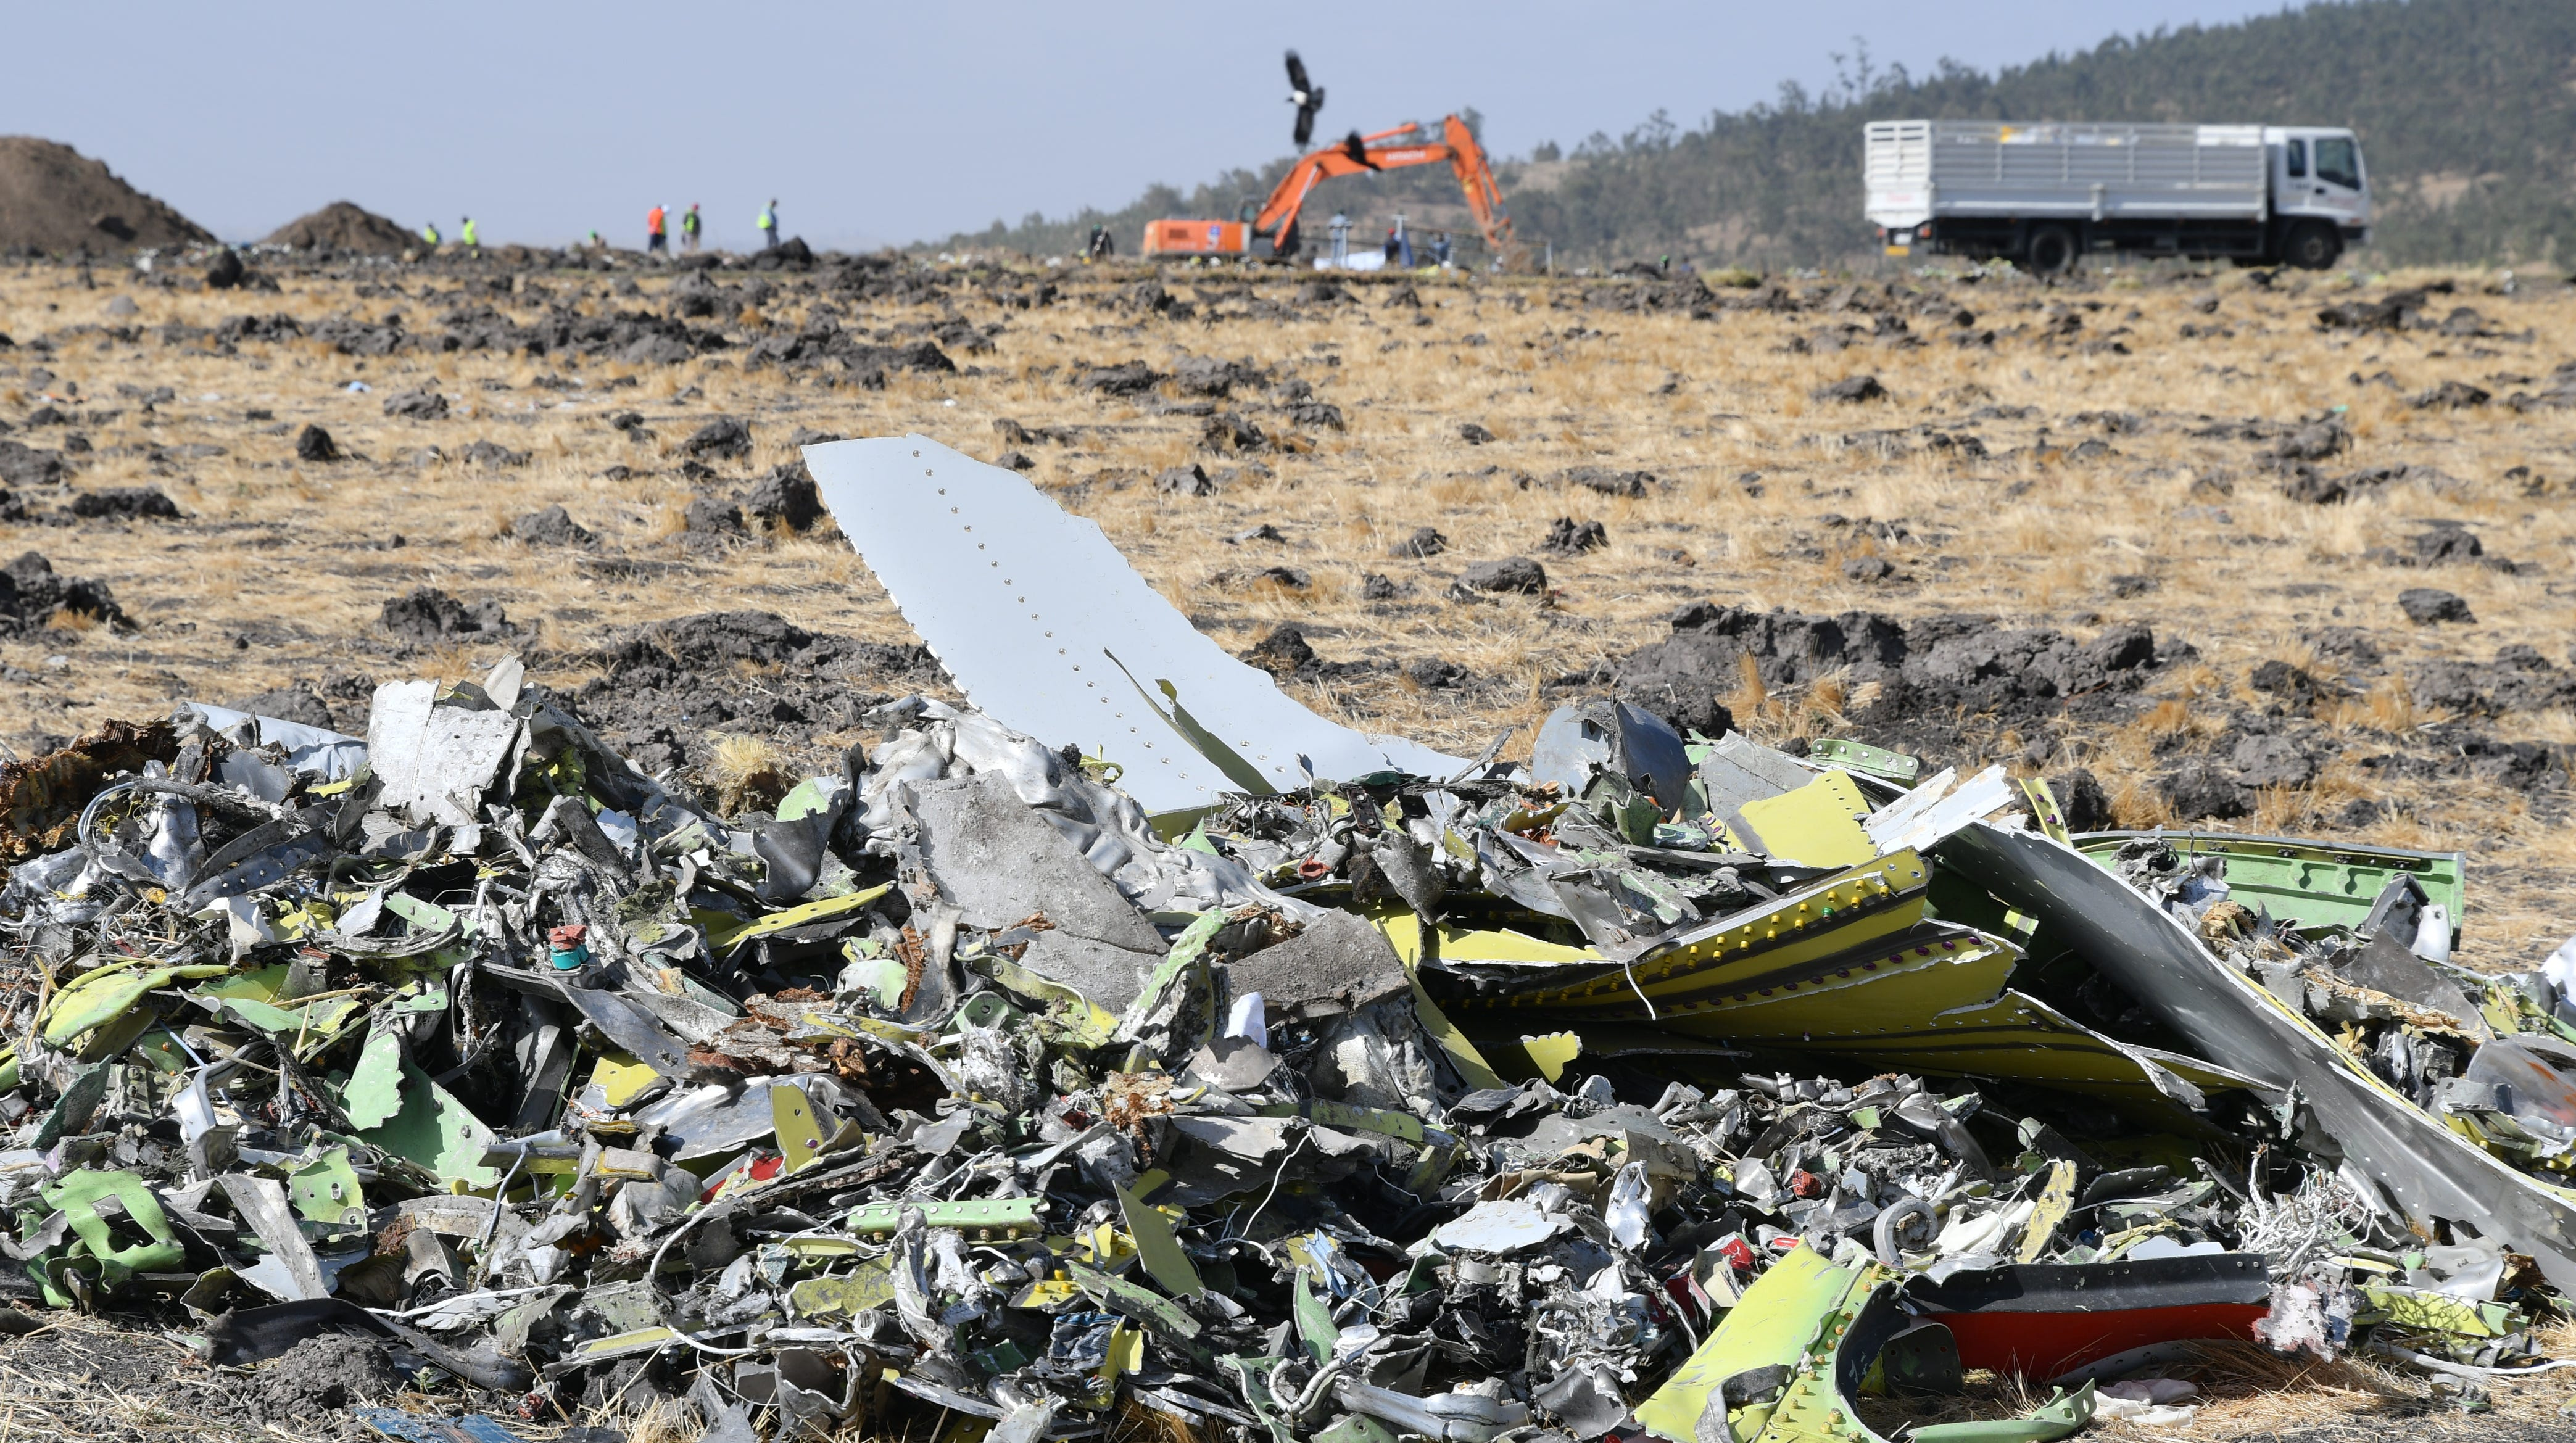 A heap of debris from the wreckage of an Ethiopia Airlines Boeing 737 Max 8 aircraft are piled at the crash site near Bishoftu, Ethiopia on March 13, 2019. Ethiopian Airlines flight ET 302 carrying 149 passengers and 8 crew was en route to Nairobi, Kenya, when it crashed on March 10, 2019 by yet undetermined reason. All passengers and crew aboard died in the crash. The Boeing 737 Max 8 aircraft has come under scrutiny after similar deadly crashes in Ethiopia and Indonesia within a few months. Several countries have banned the plane type from their airspace and many airlines have grounded their 737 Max 8 planes for safety concerns after the Ethiopian Airlines plane crashed minutes after take-off on March 10.